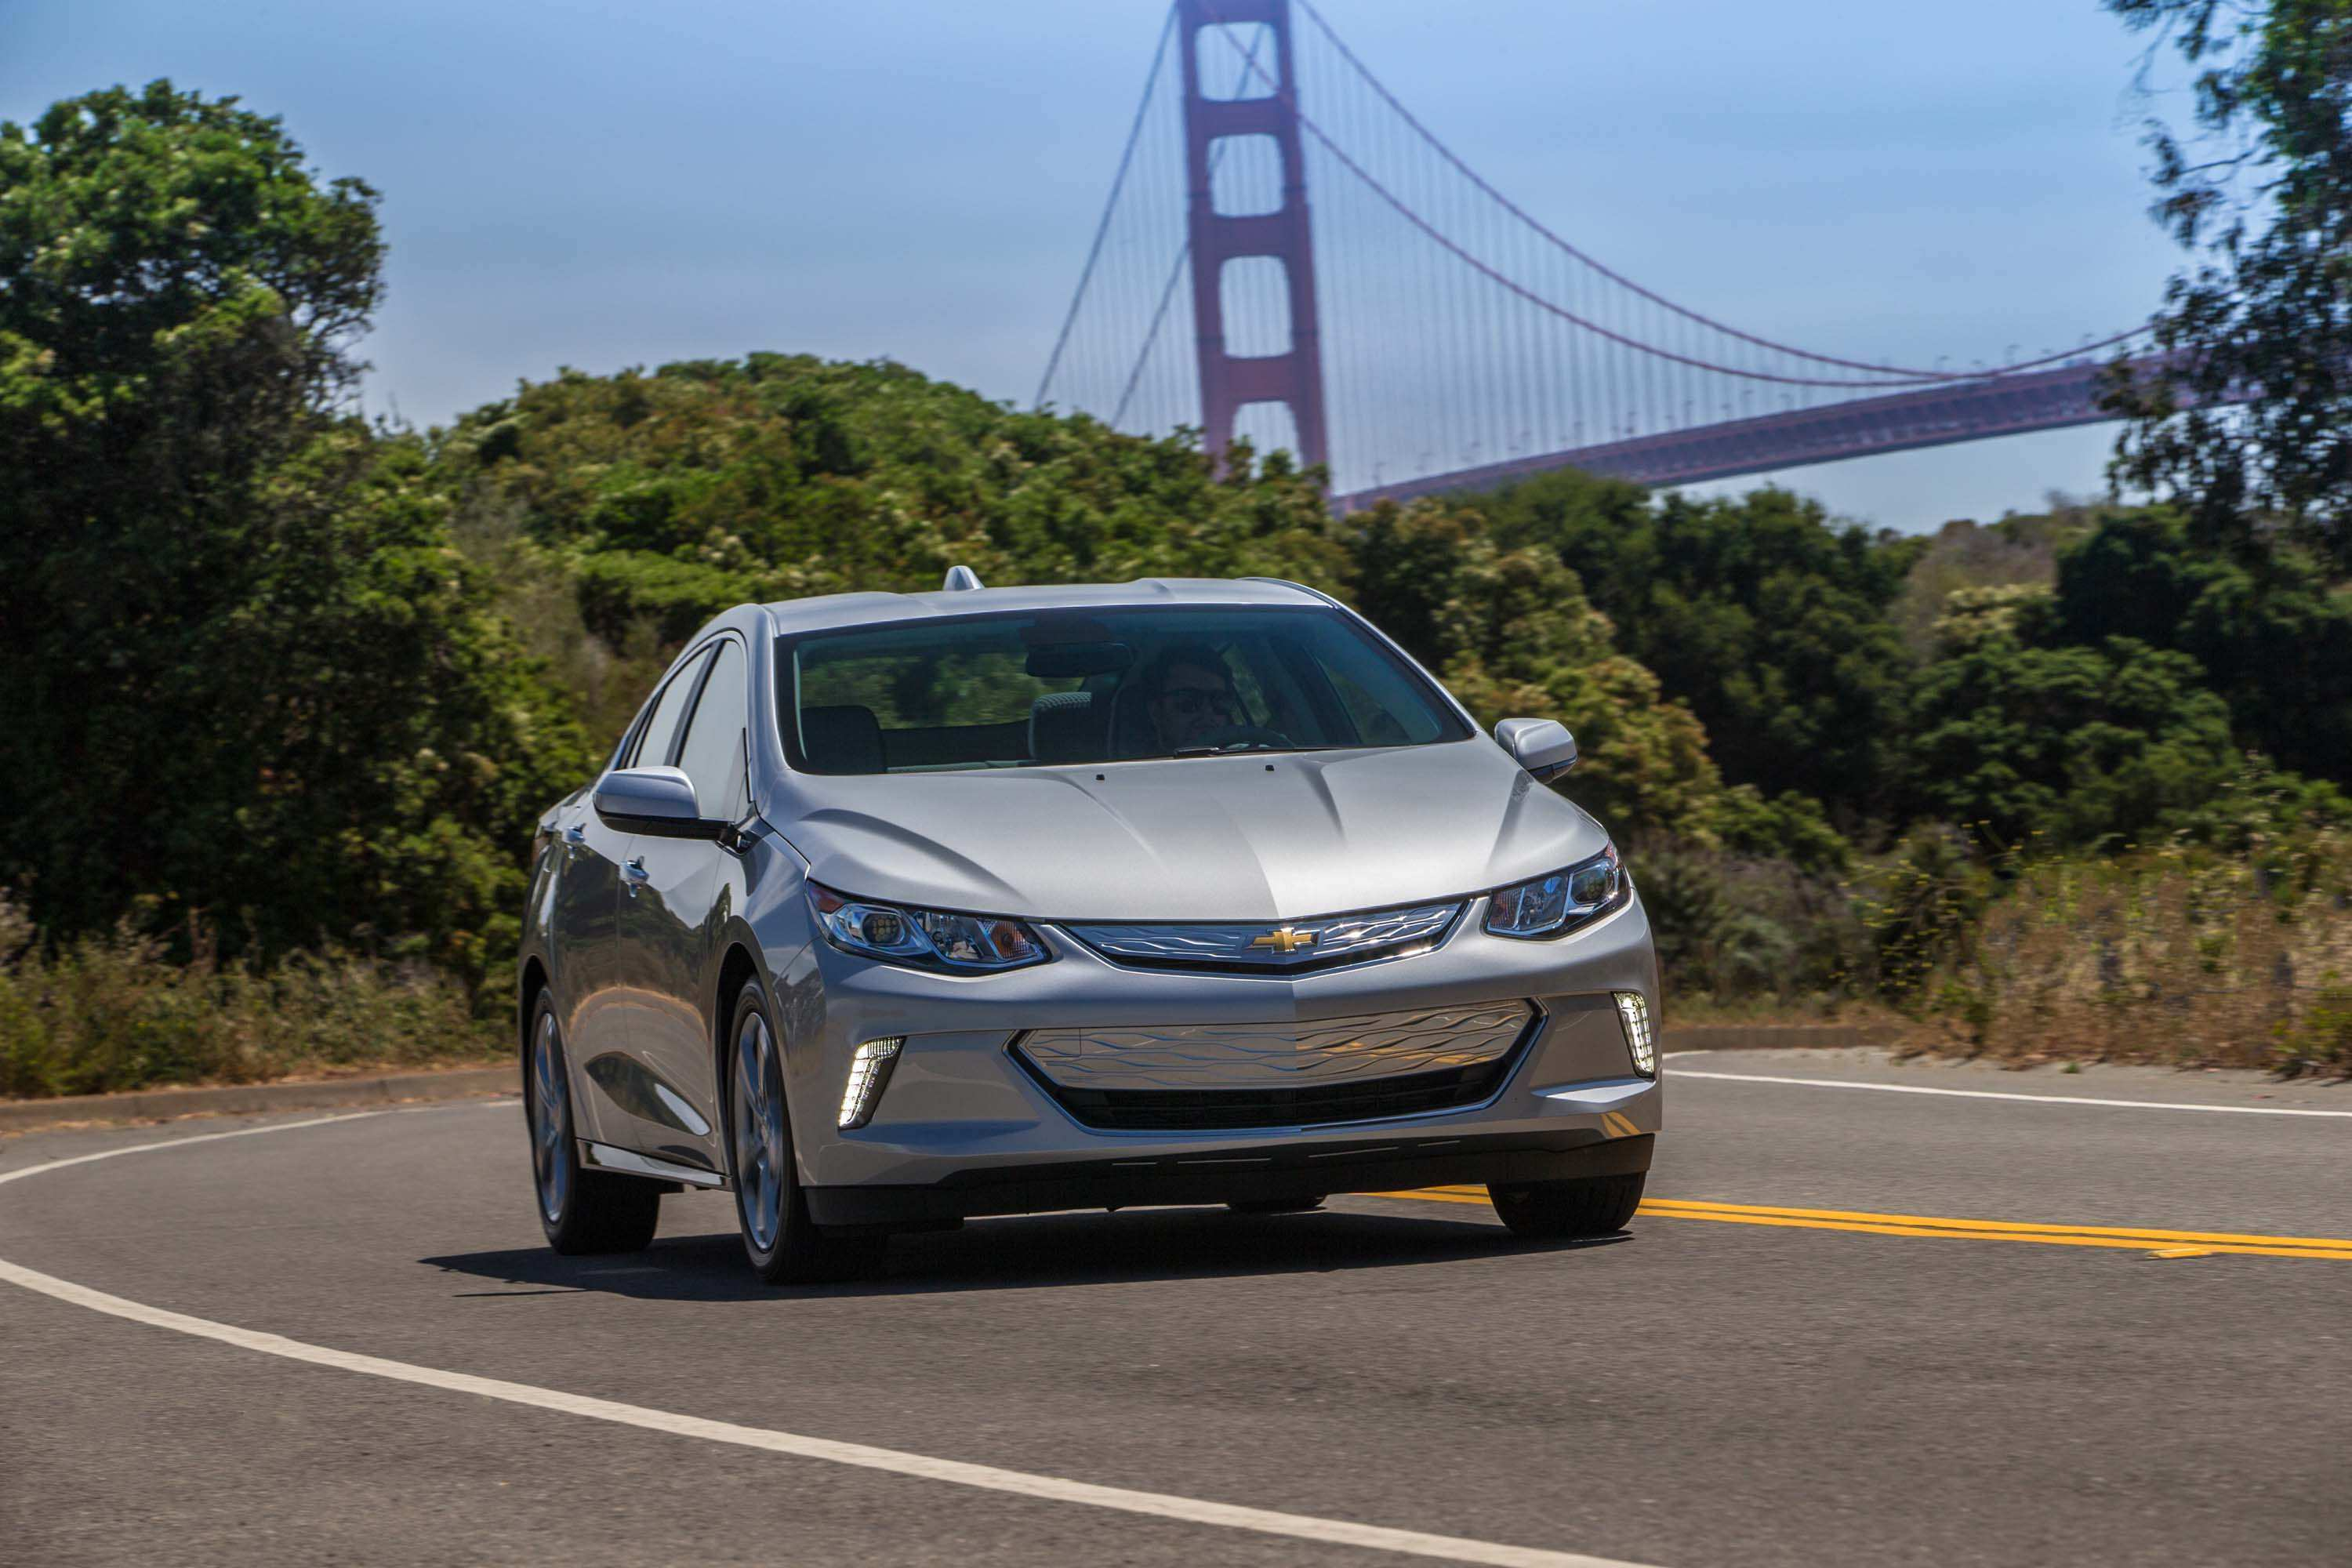 82 The Best 2020 Chevrolet Volt Price And Review